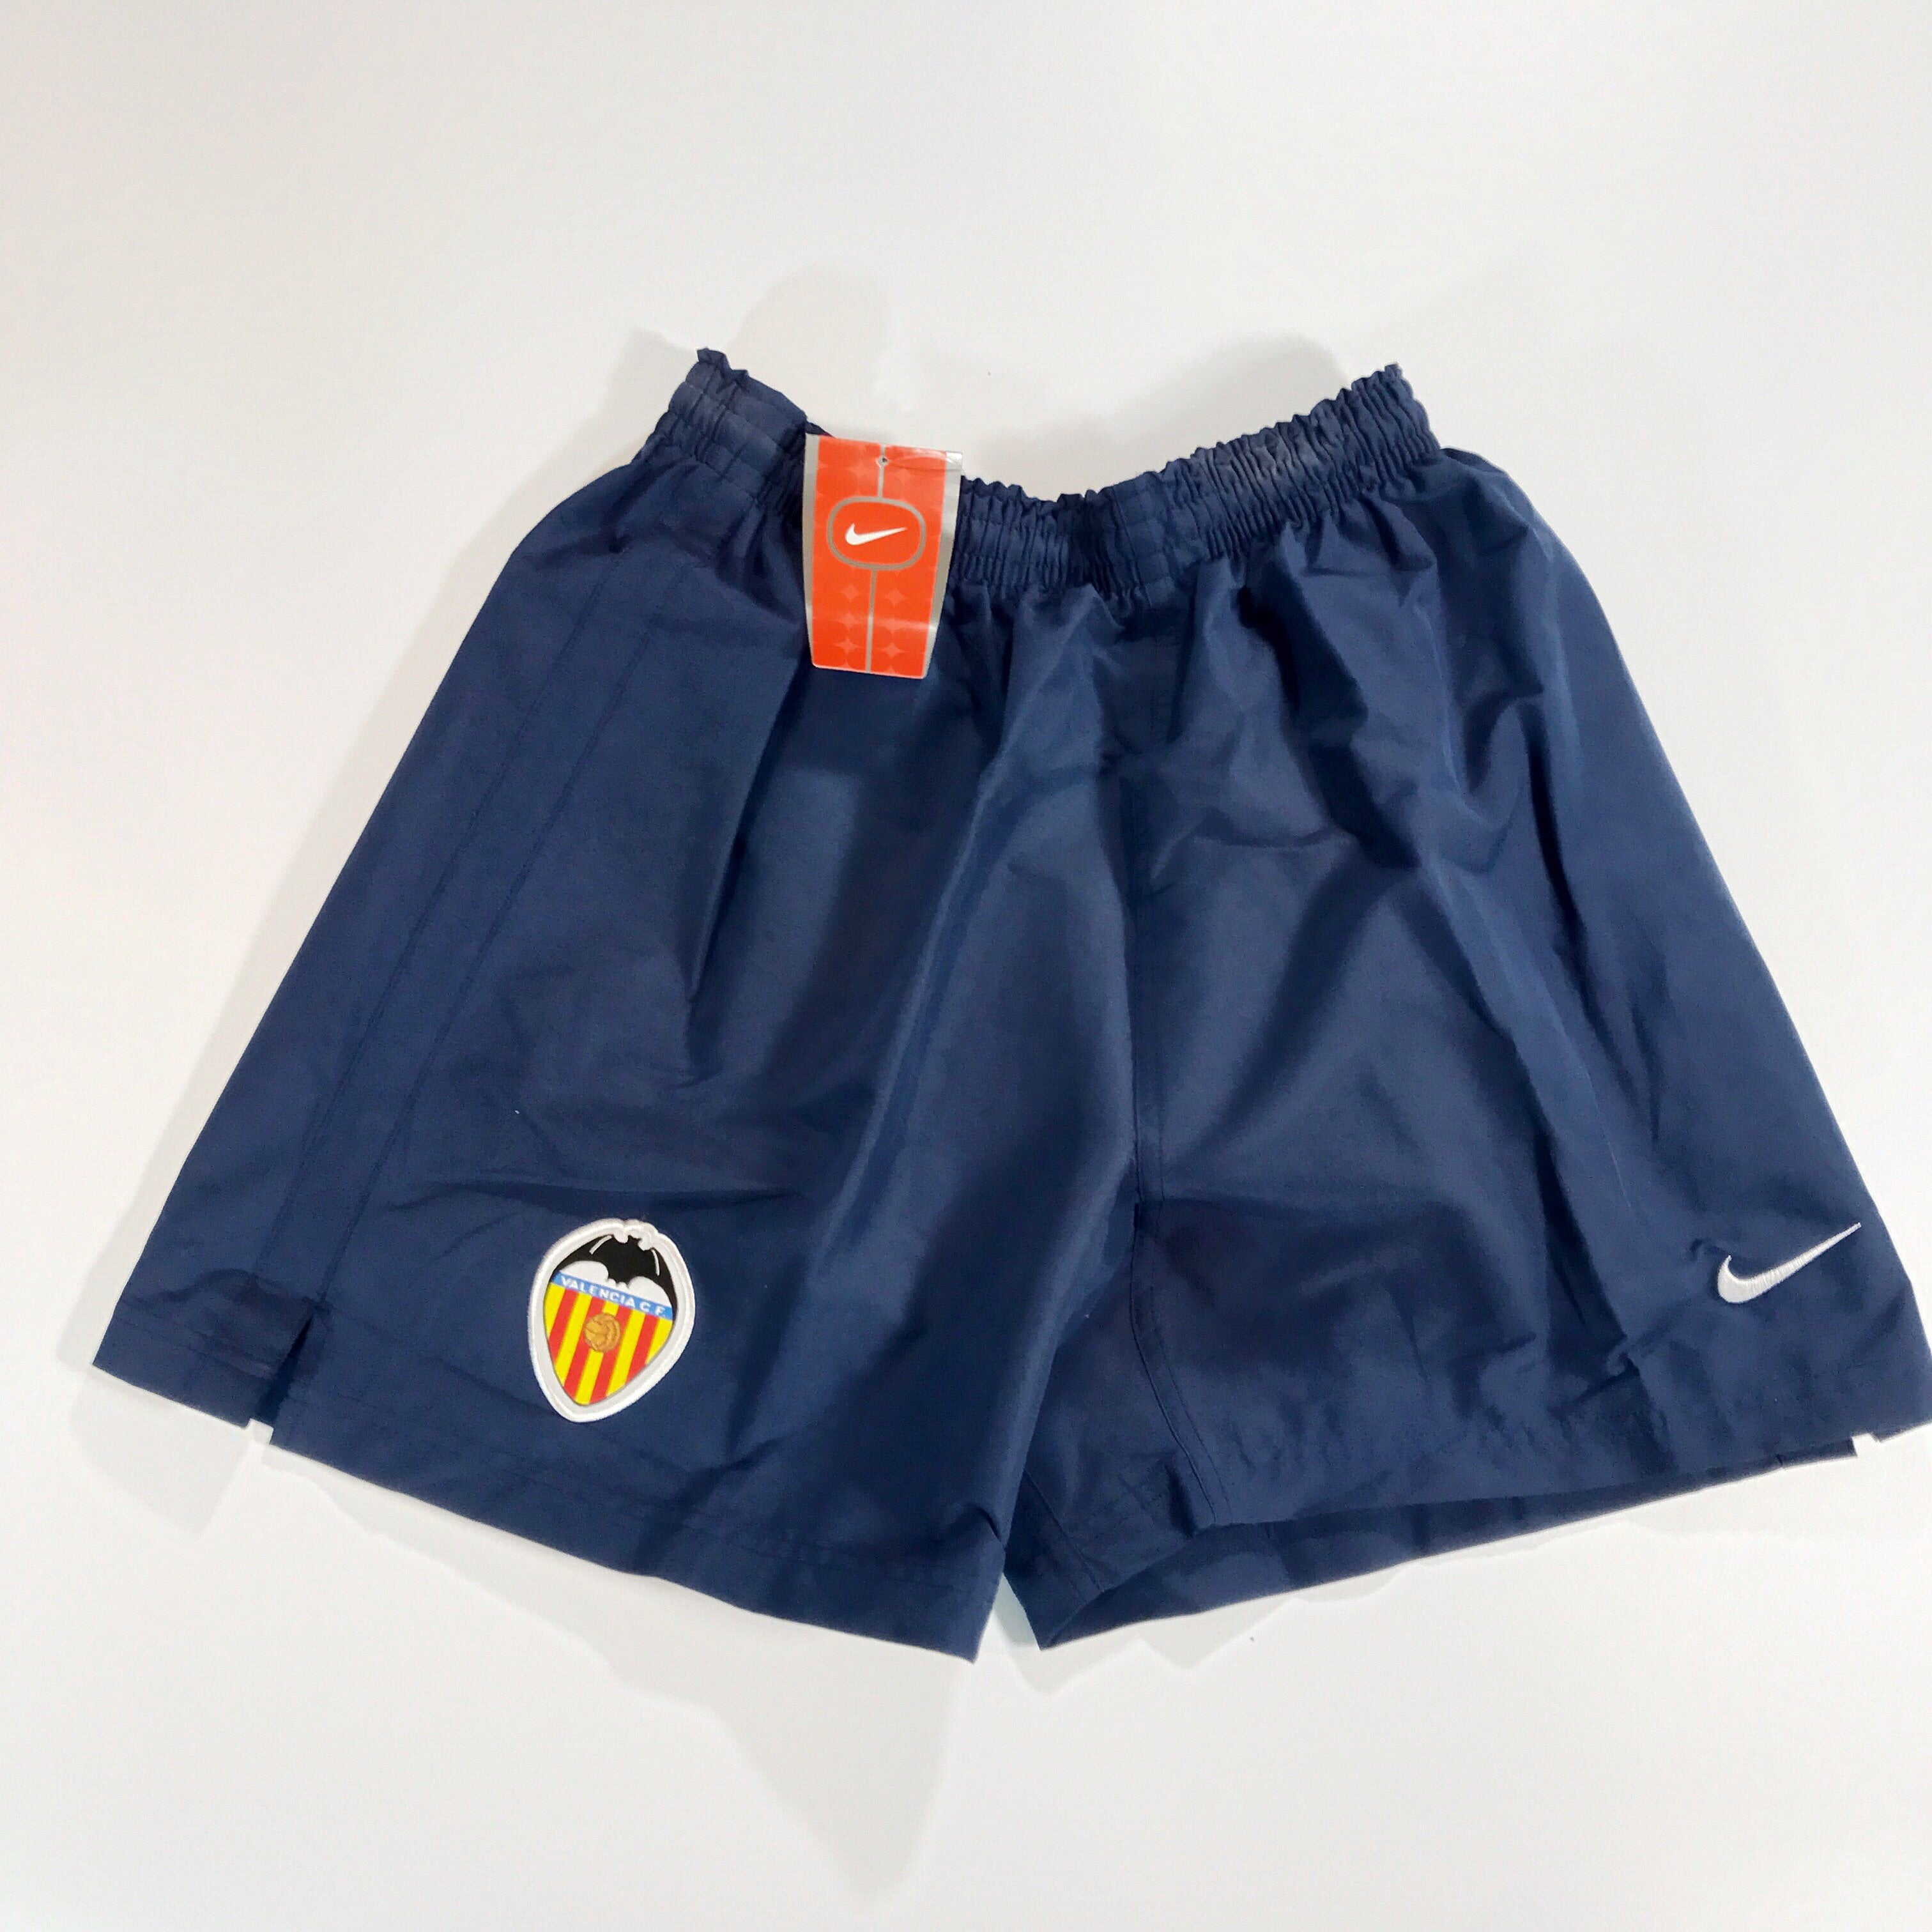 Valencia 2000-2001 Nike Home Football shorts bnwt